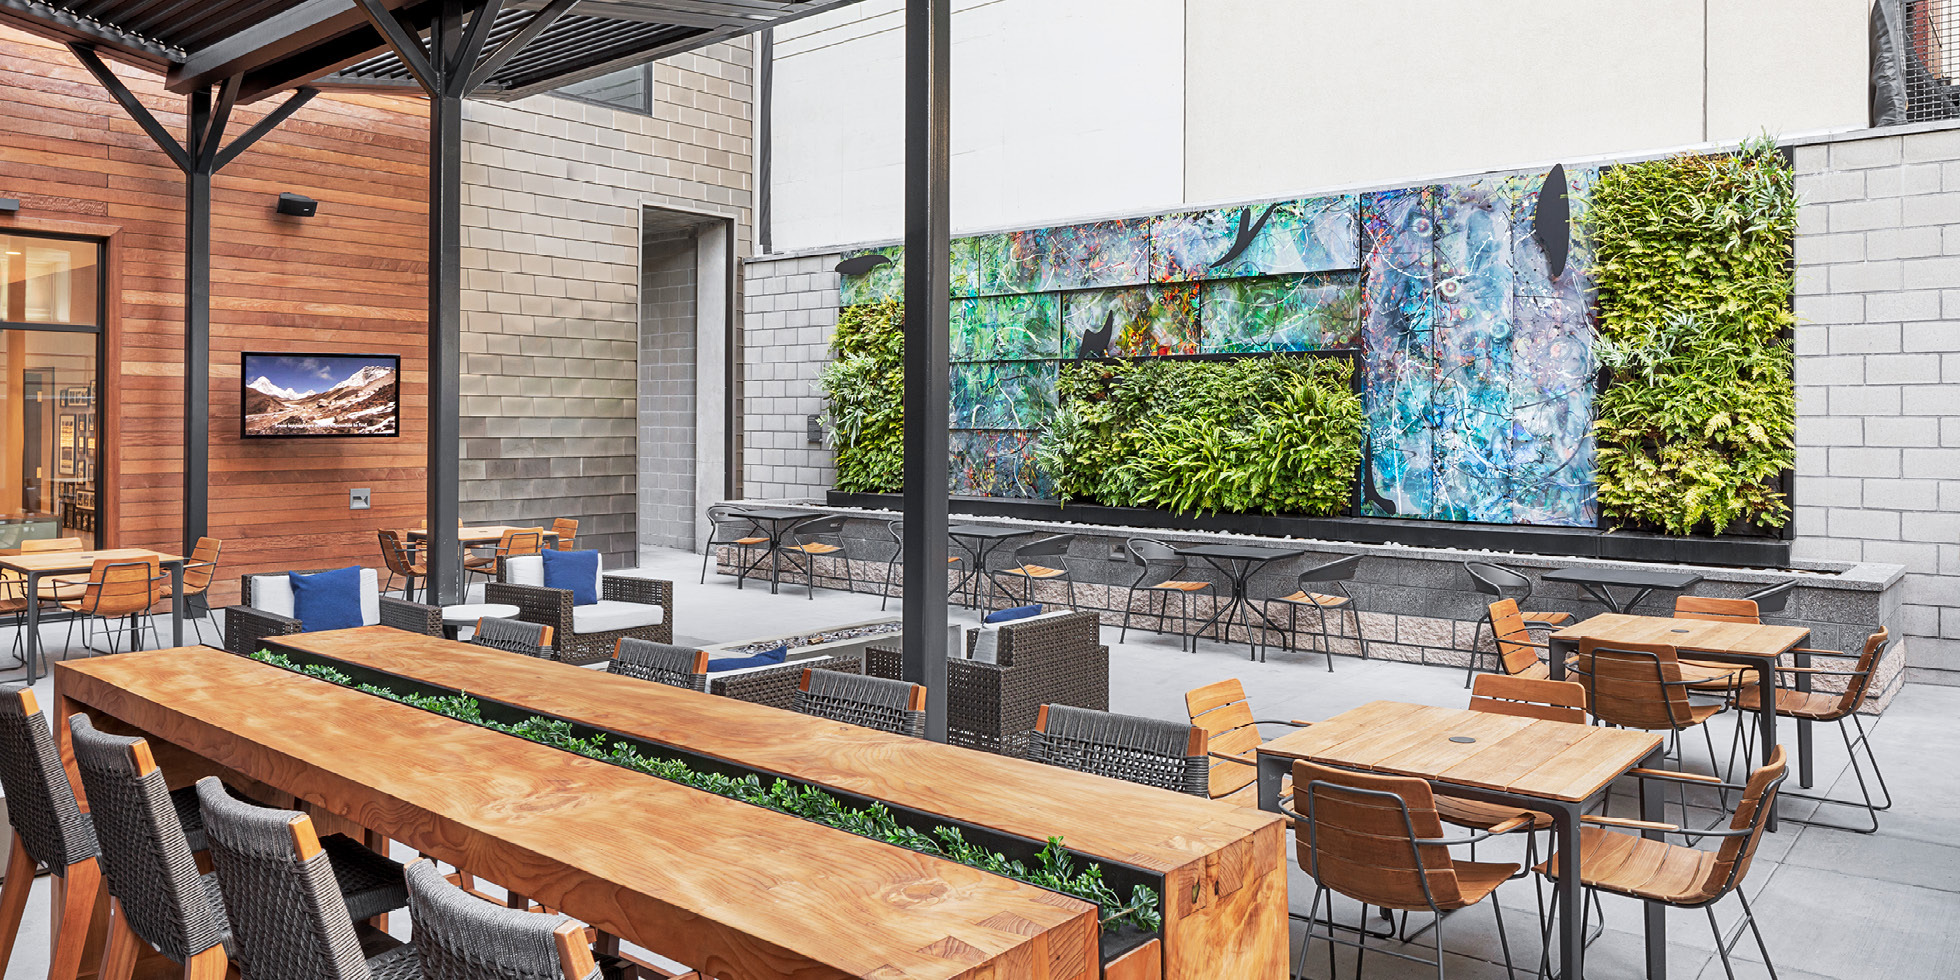 Hyatt Place Living Wall by Habitat Horticulture - View 1